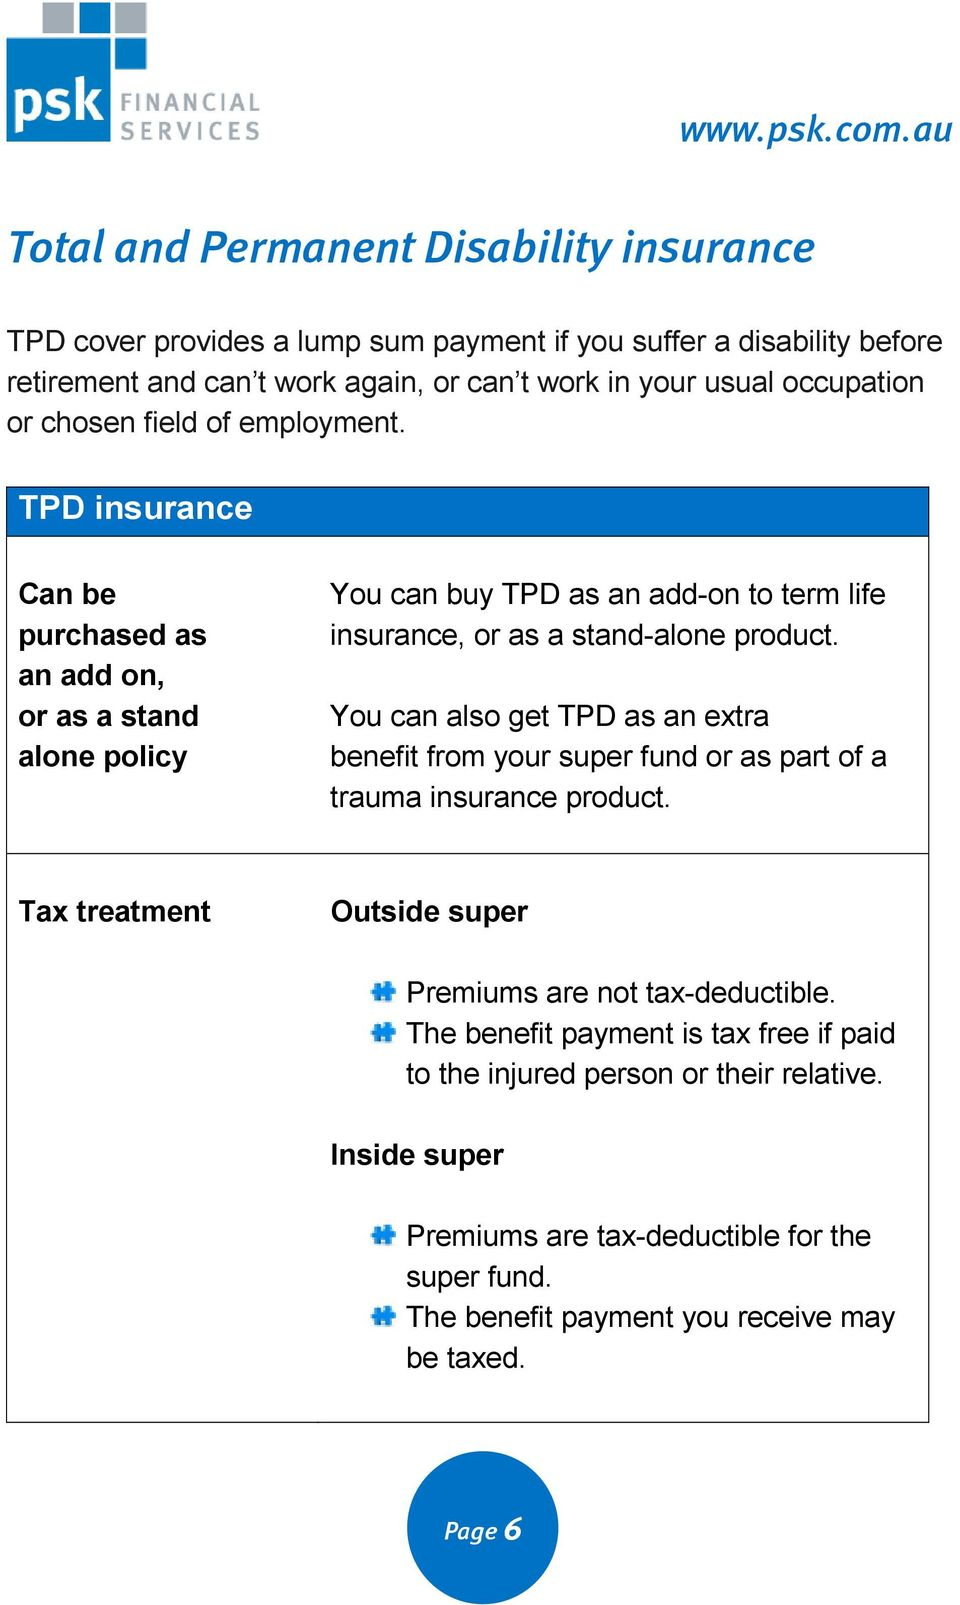 TPD insurance Can be purchased as an add on, or as a stand alone policy You can buy TPD as an add-on to term life insurance, or as a stand-alone product.